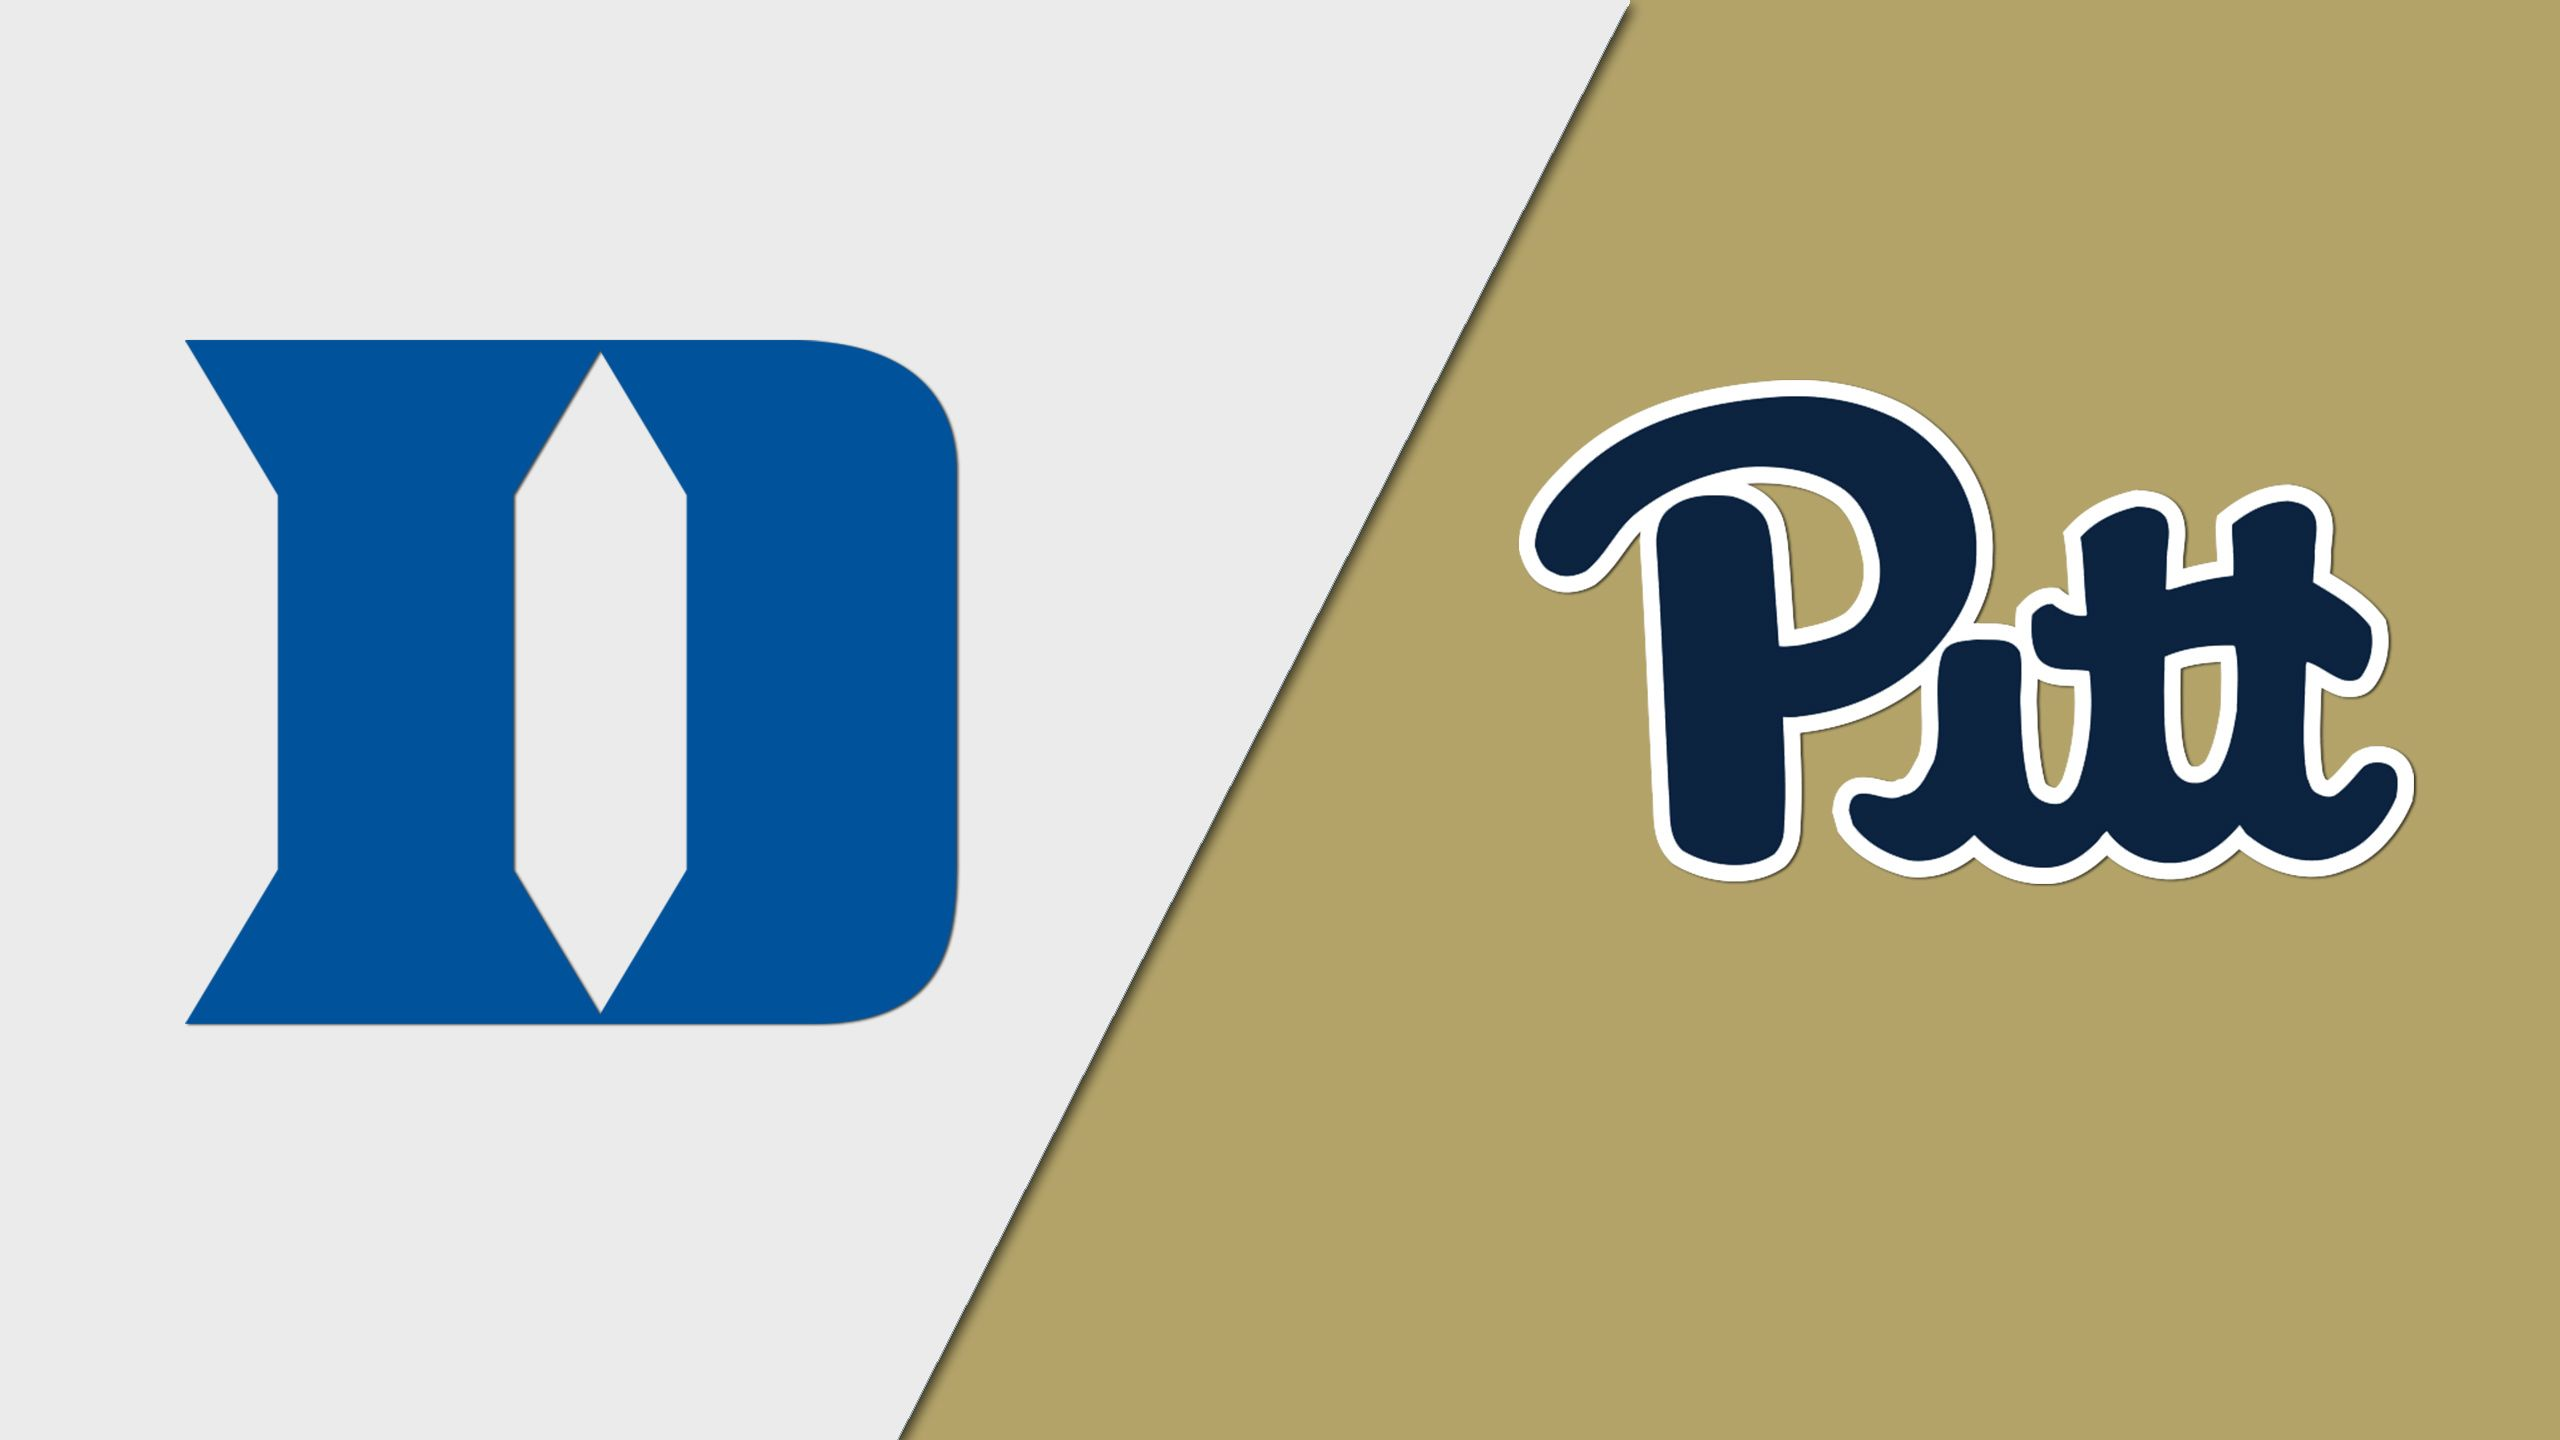 #19 Duke vs. Pittsburgh (Baseball)